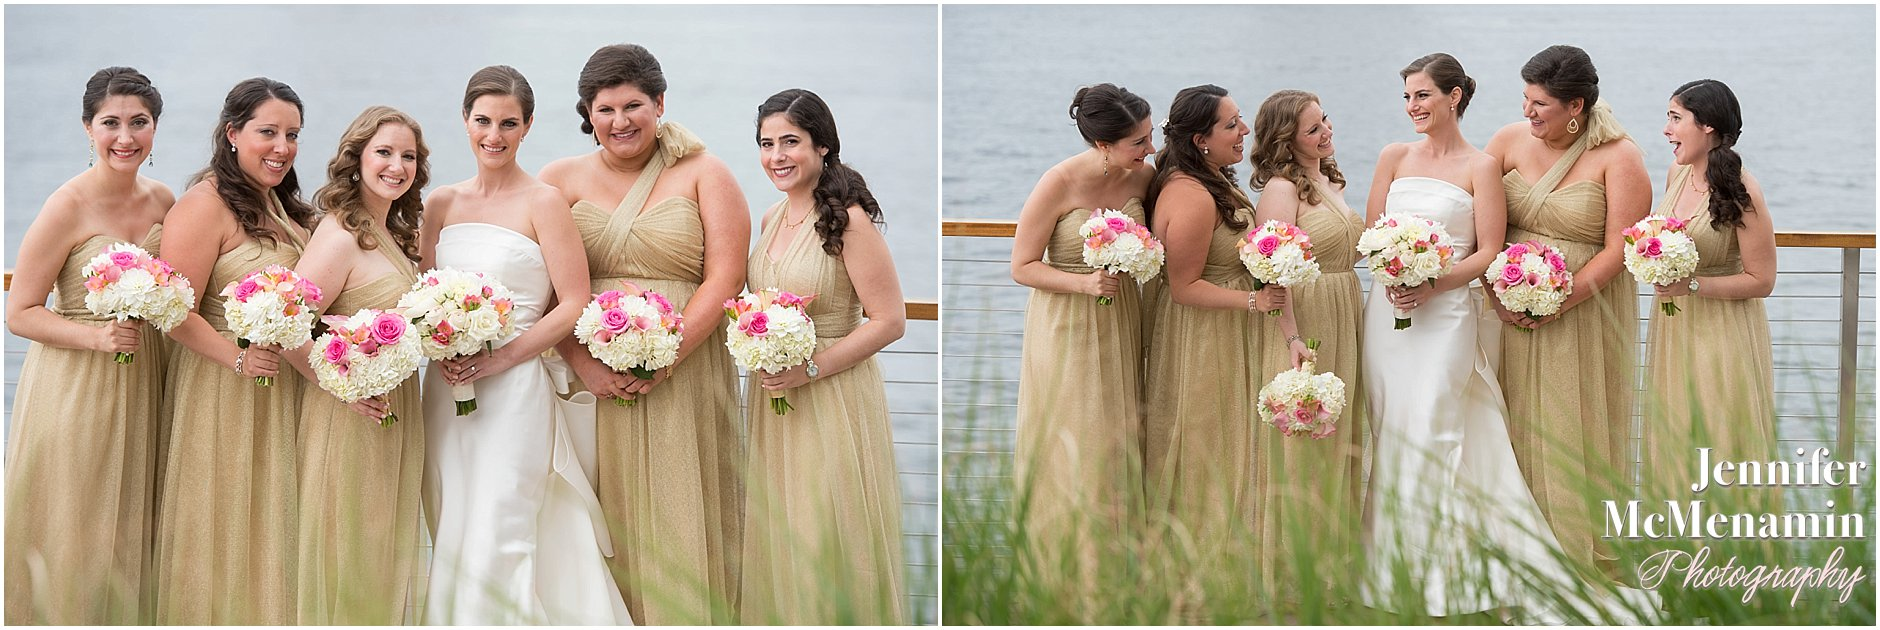 028-Jennifer-McMenamin-Photography-Baltimore-Waterfront-Marriott-wedding_0026